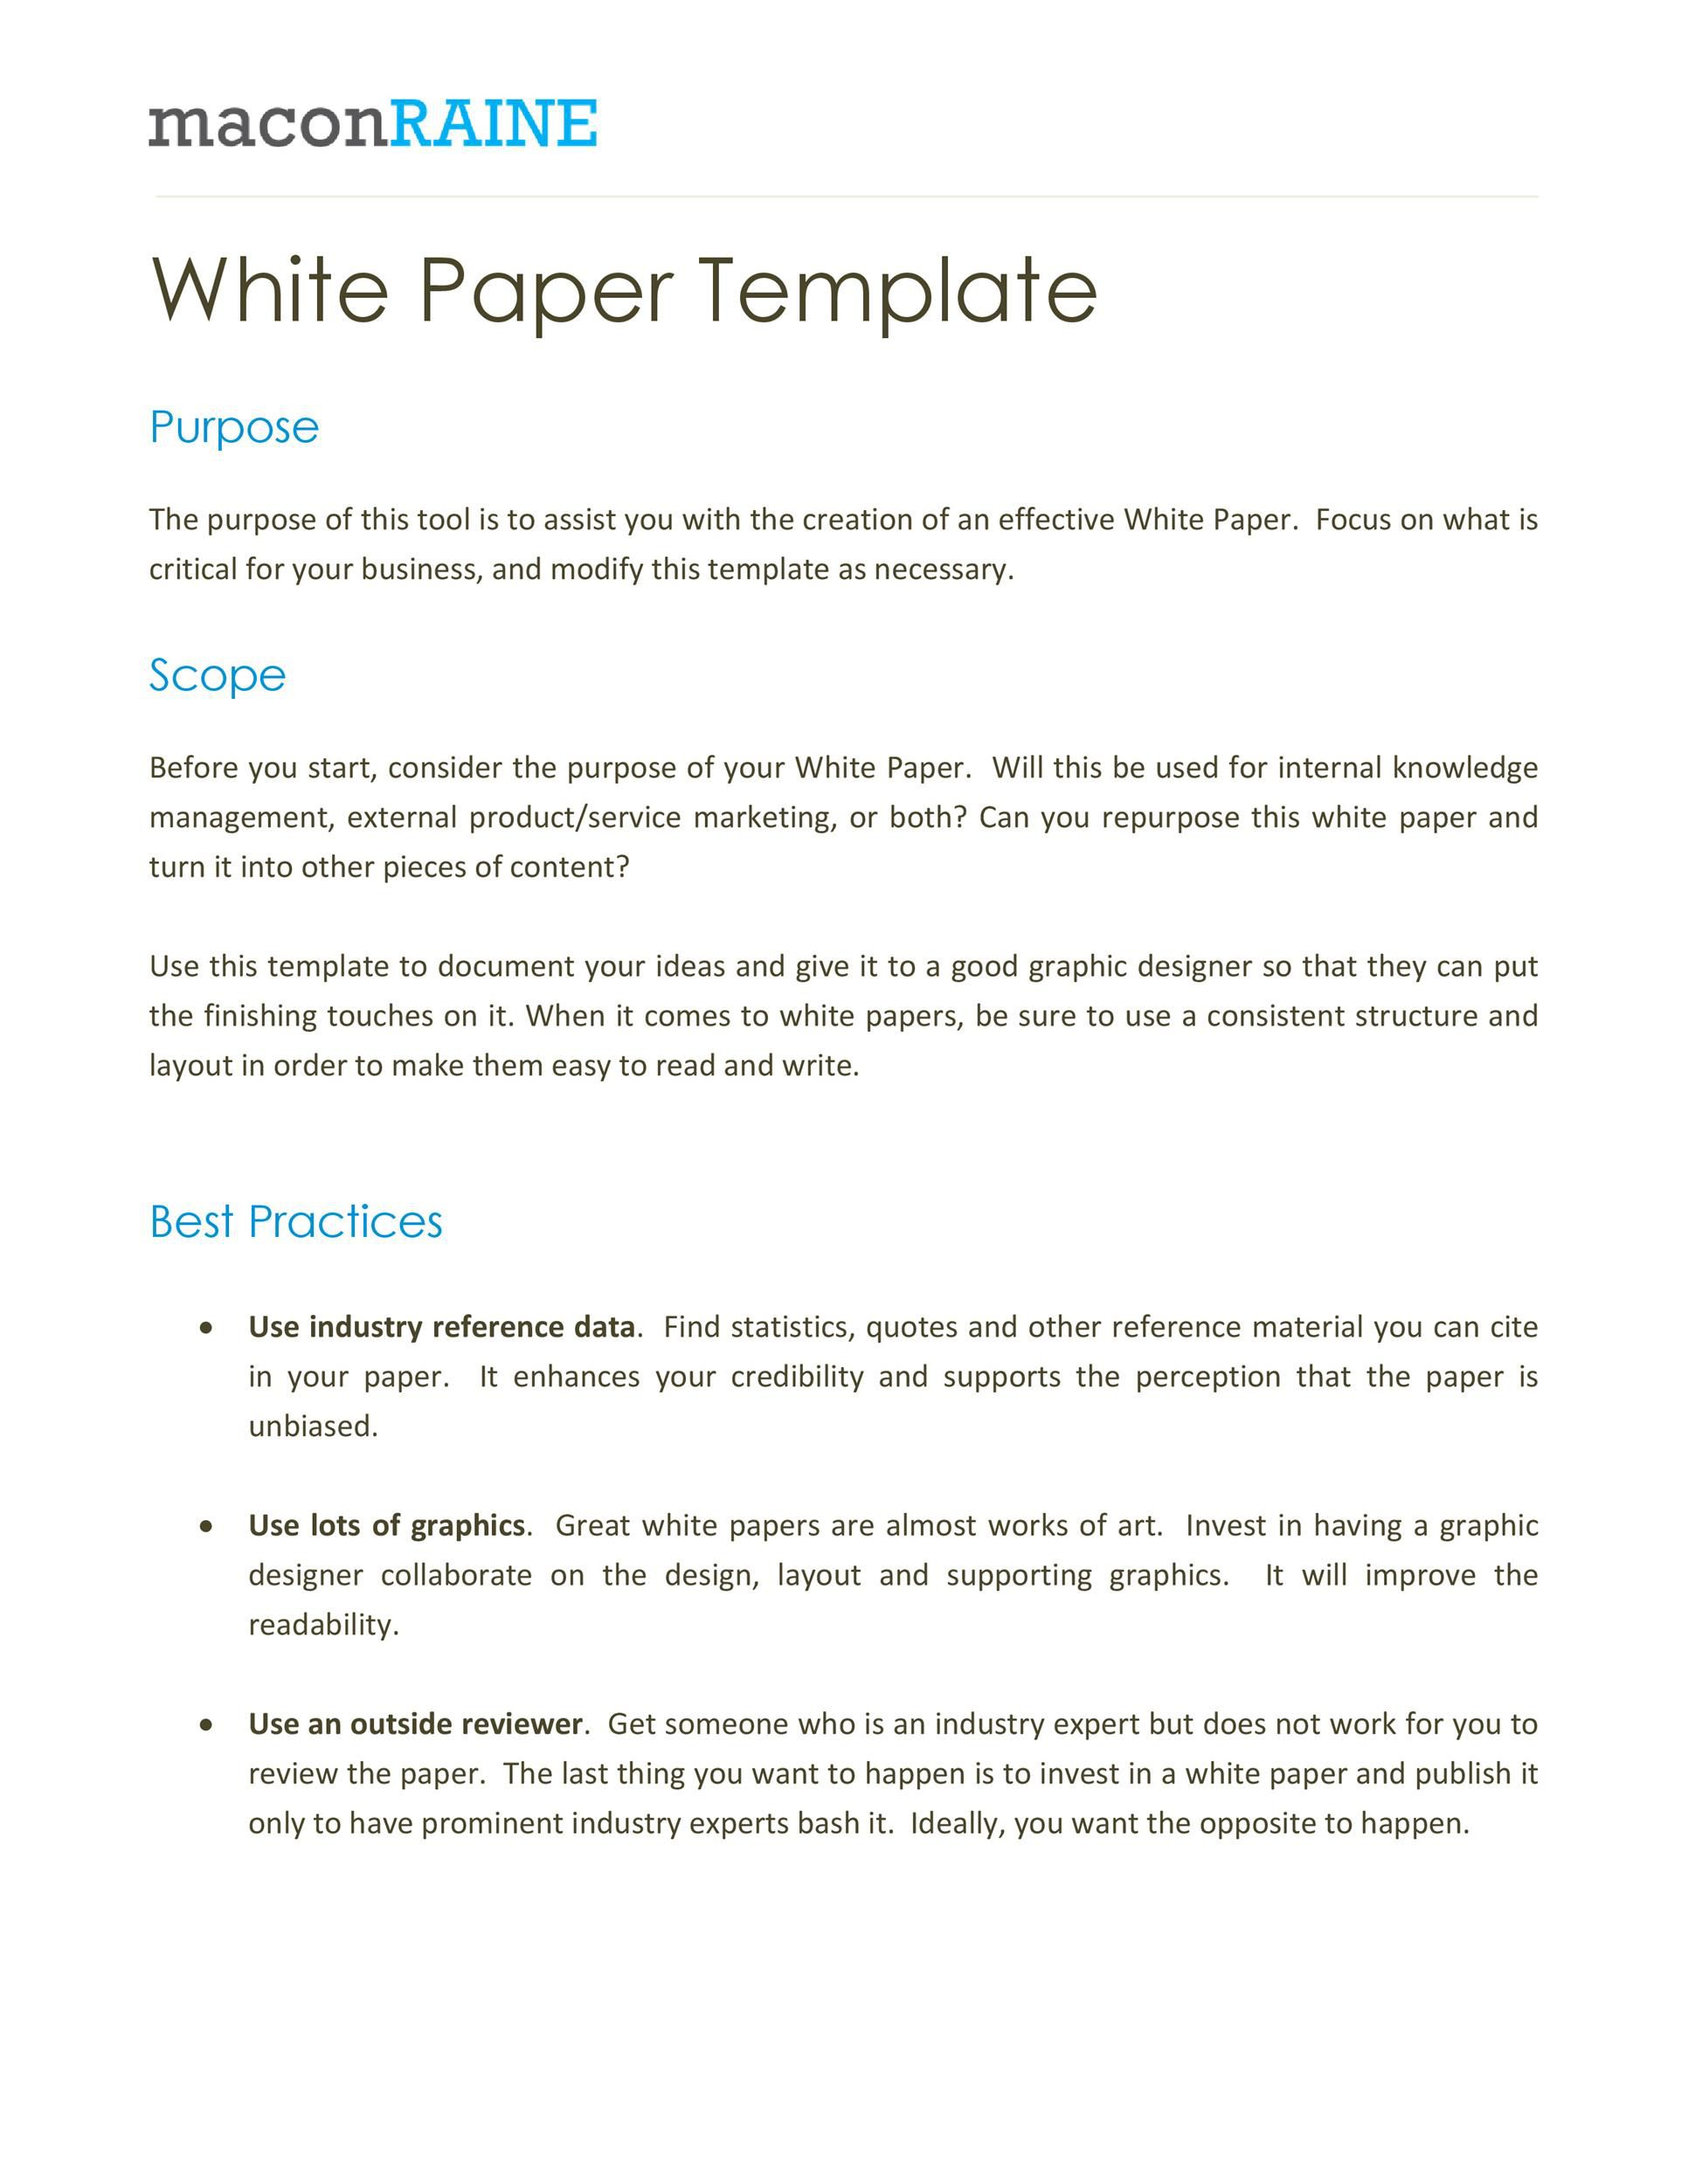 006 Amazing Free White Paper Template Image  Word 2016 Indesign MicrosoftFull